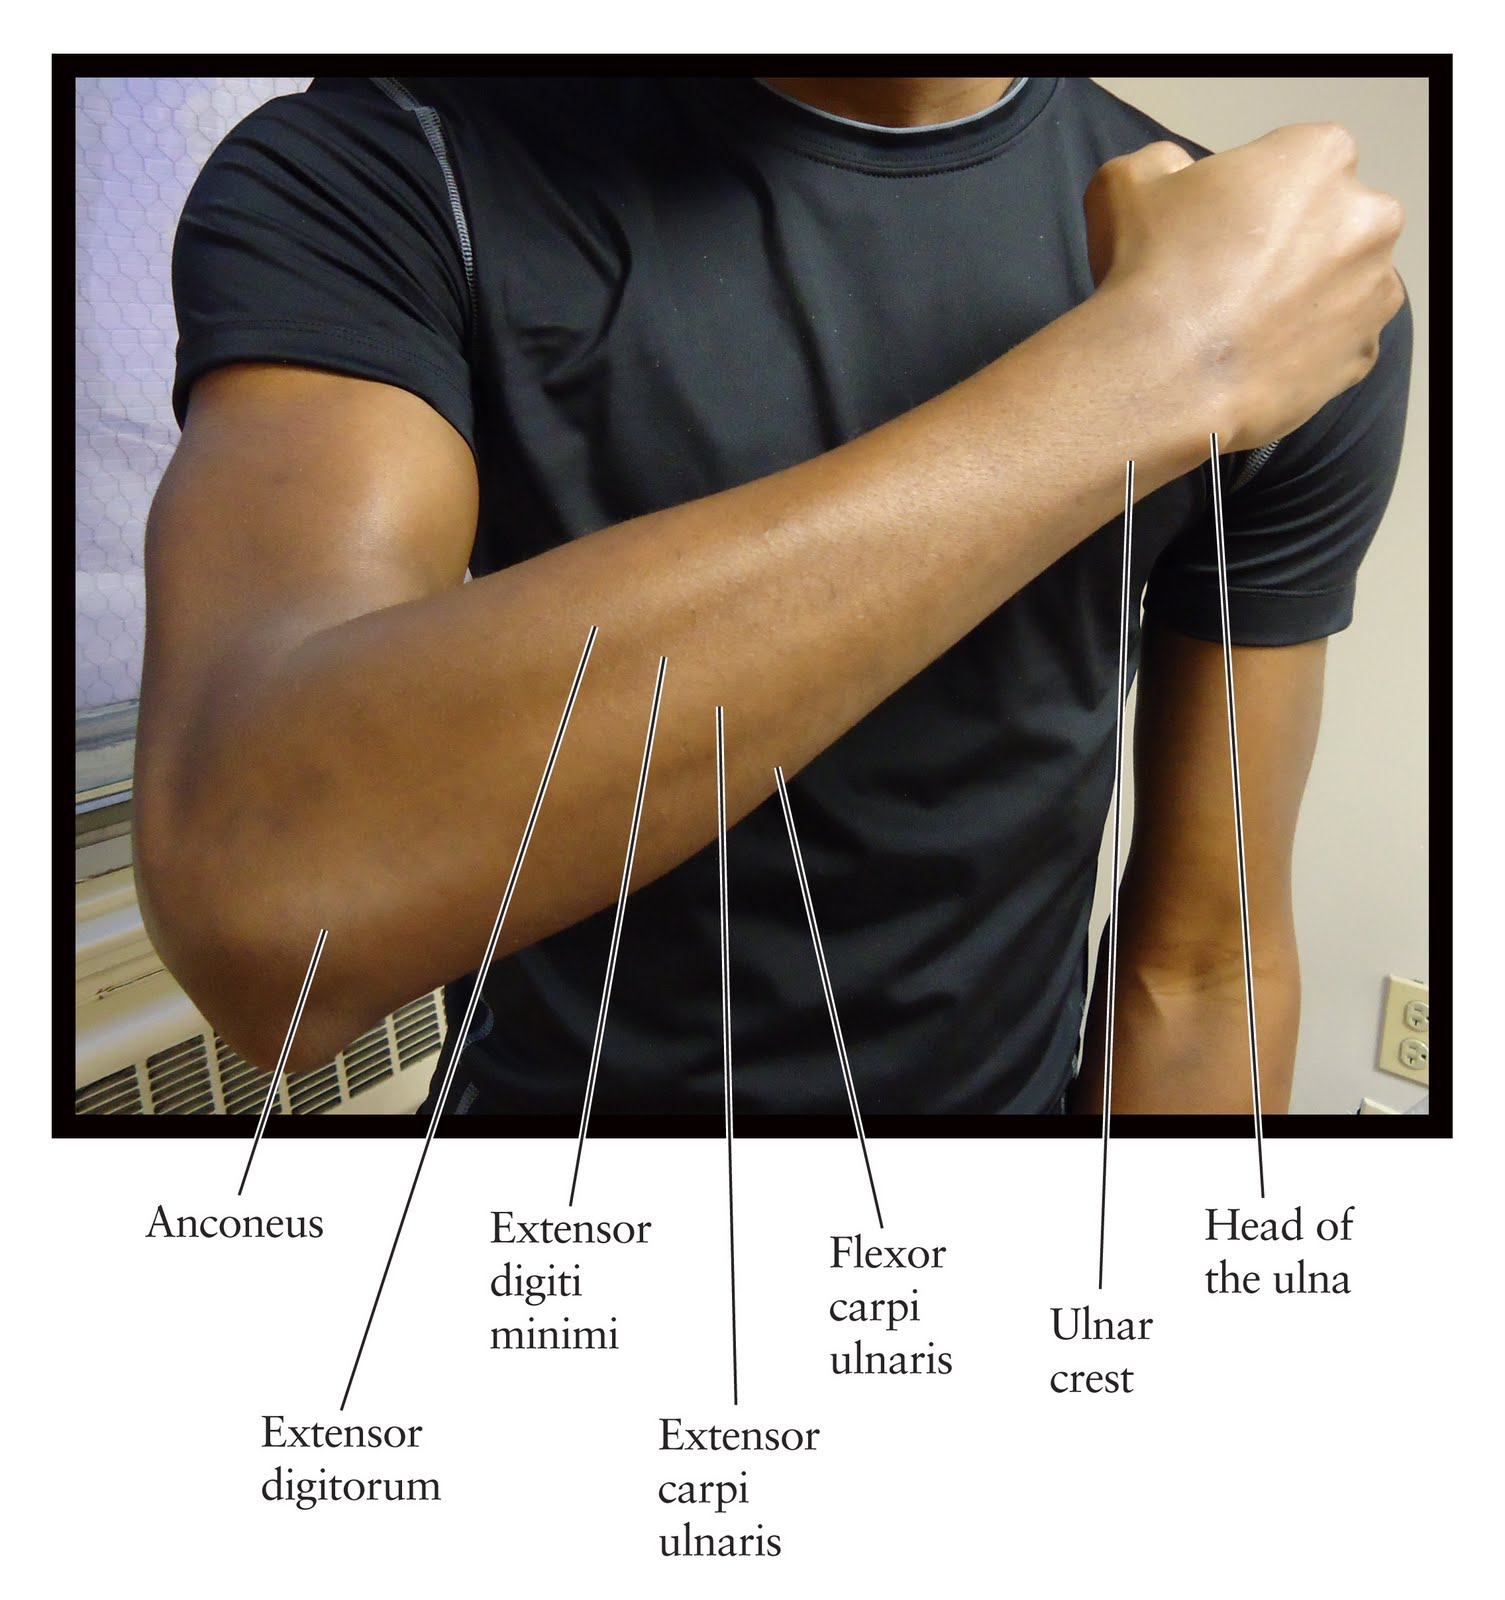 Cat Muscles - Anatomy & Physiology 2264 with Toedt at ... |Dorsal Arms